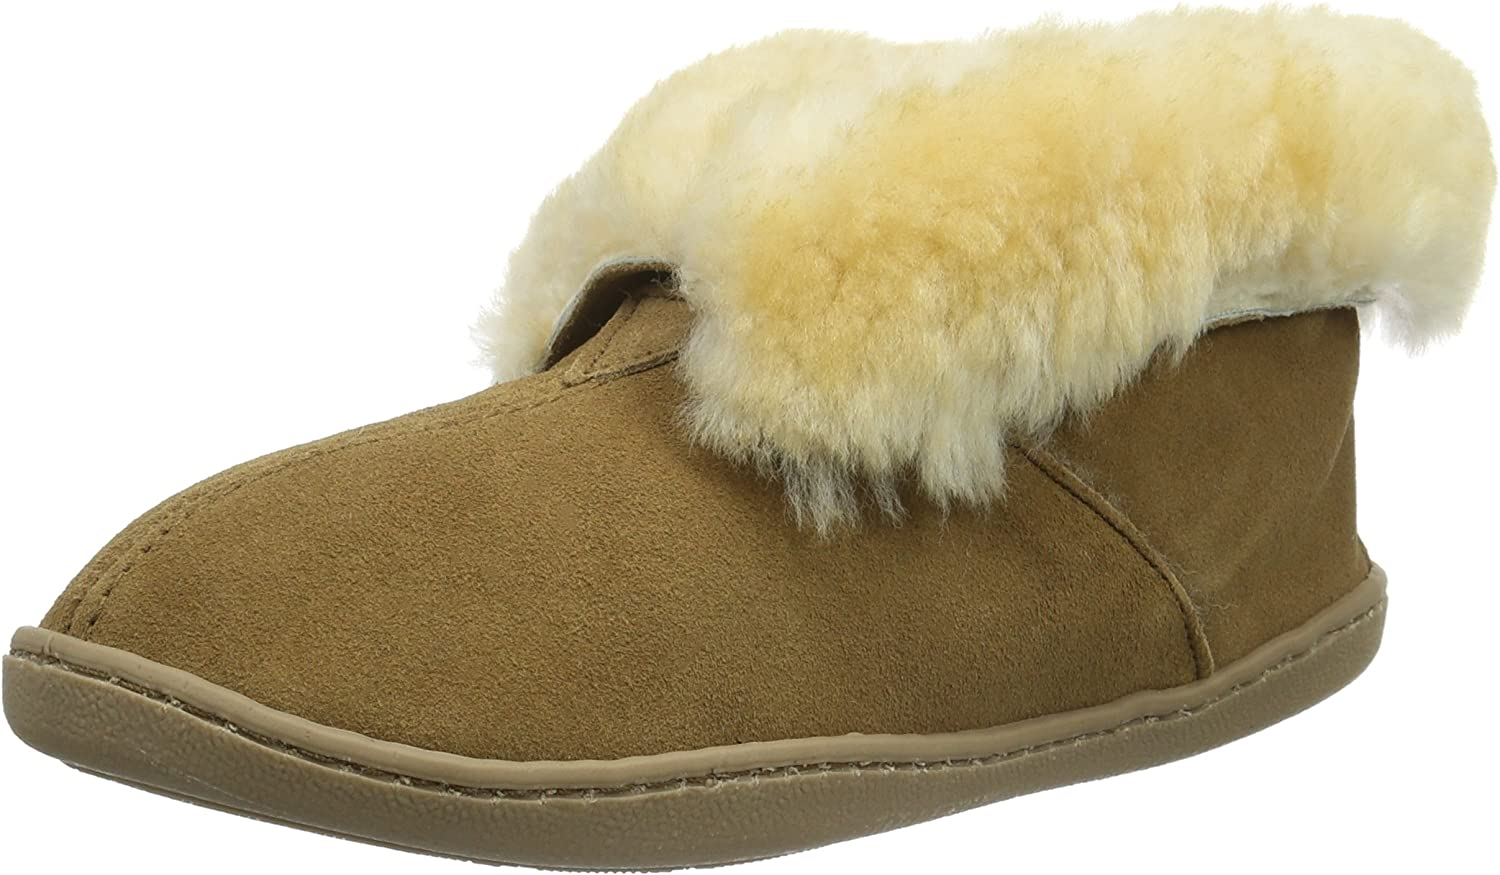 Minnetonka Women's Sheepskin Ankle Boot